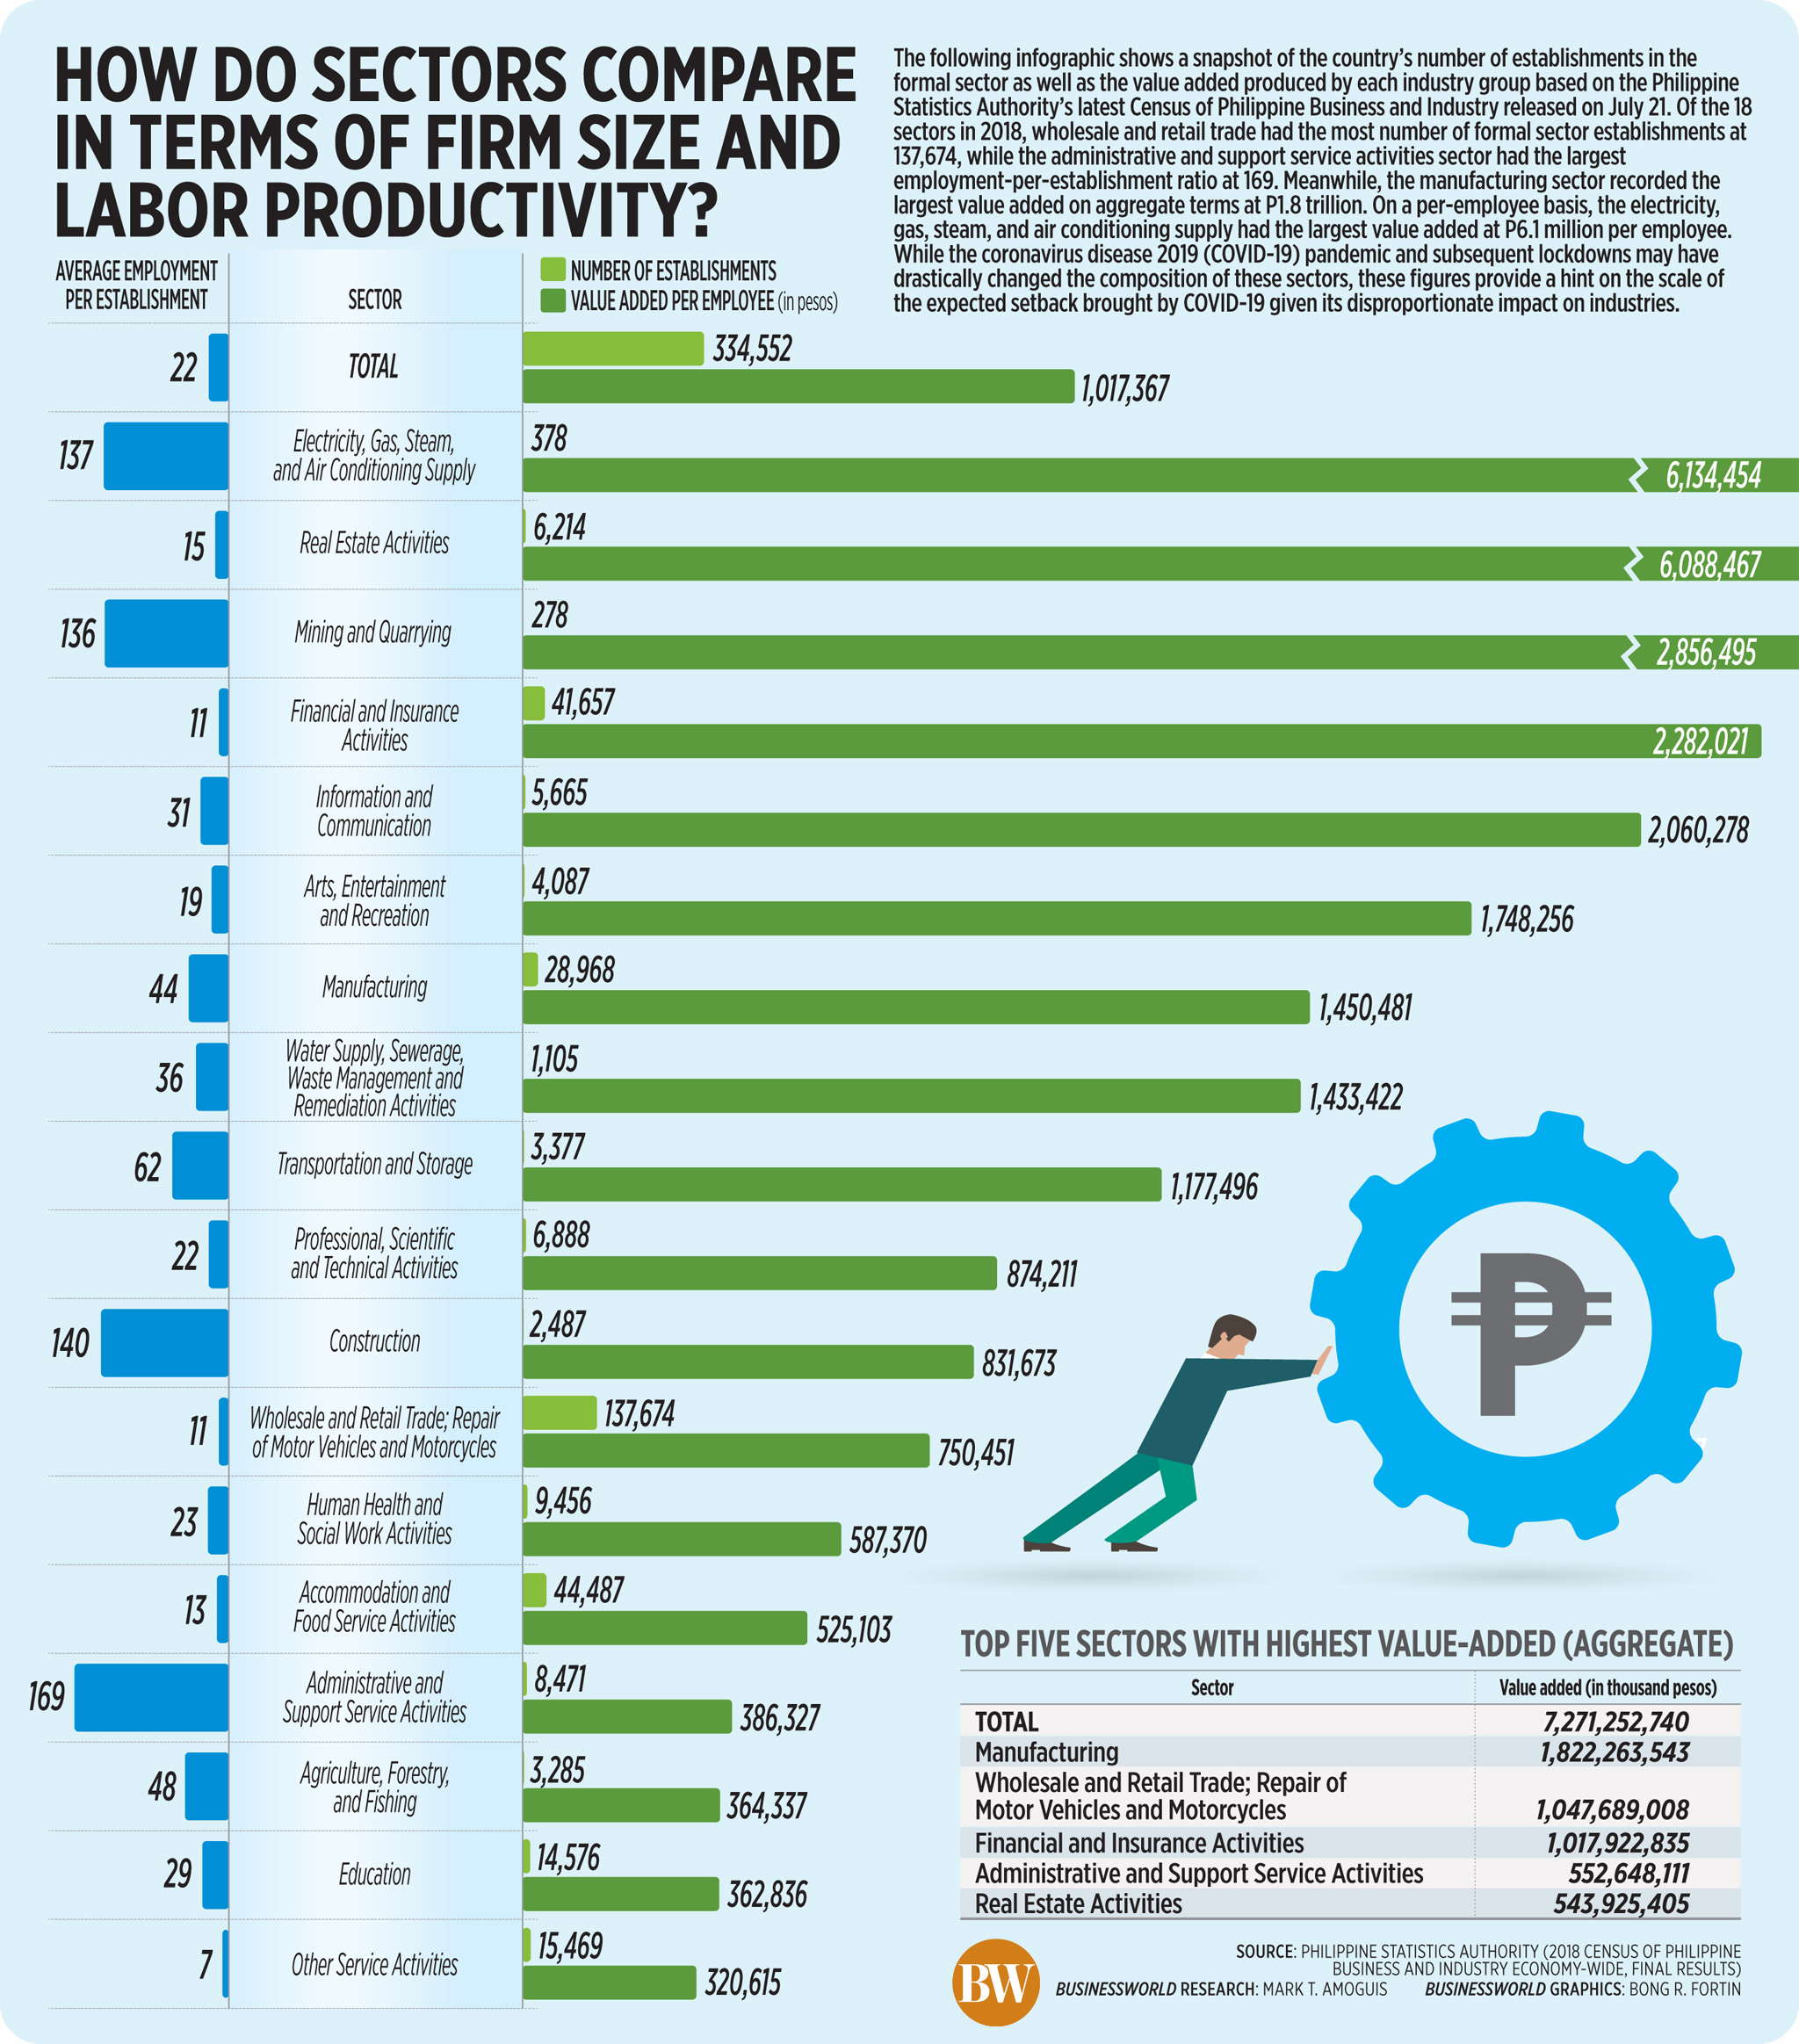 How do sectors compare in terms of firm size and labor productivity?